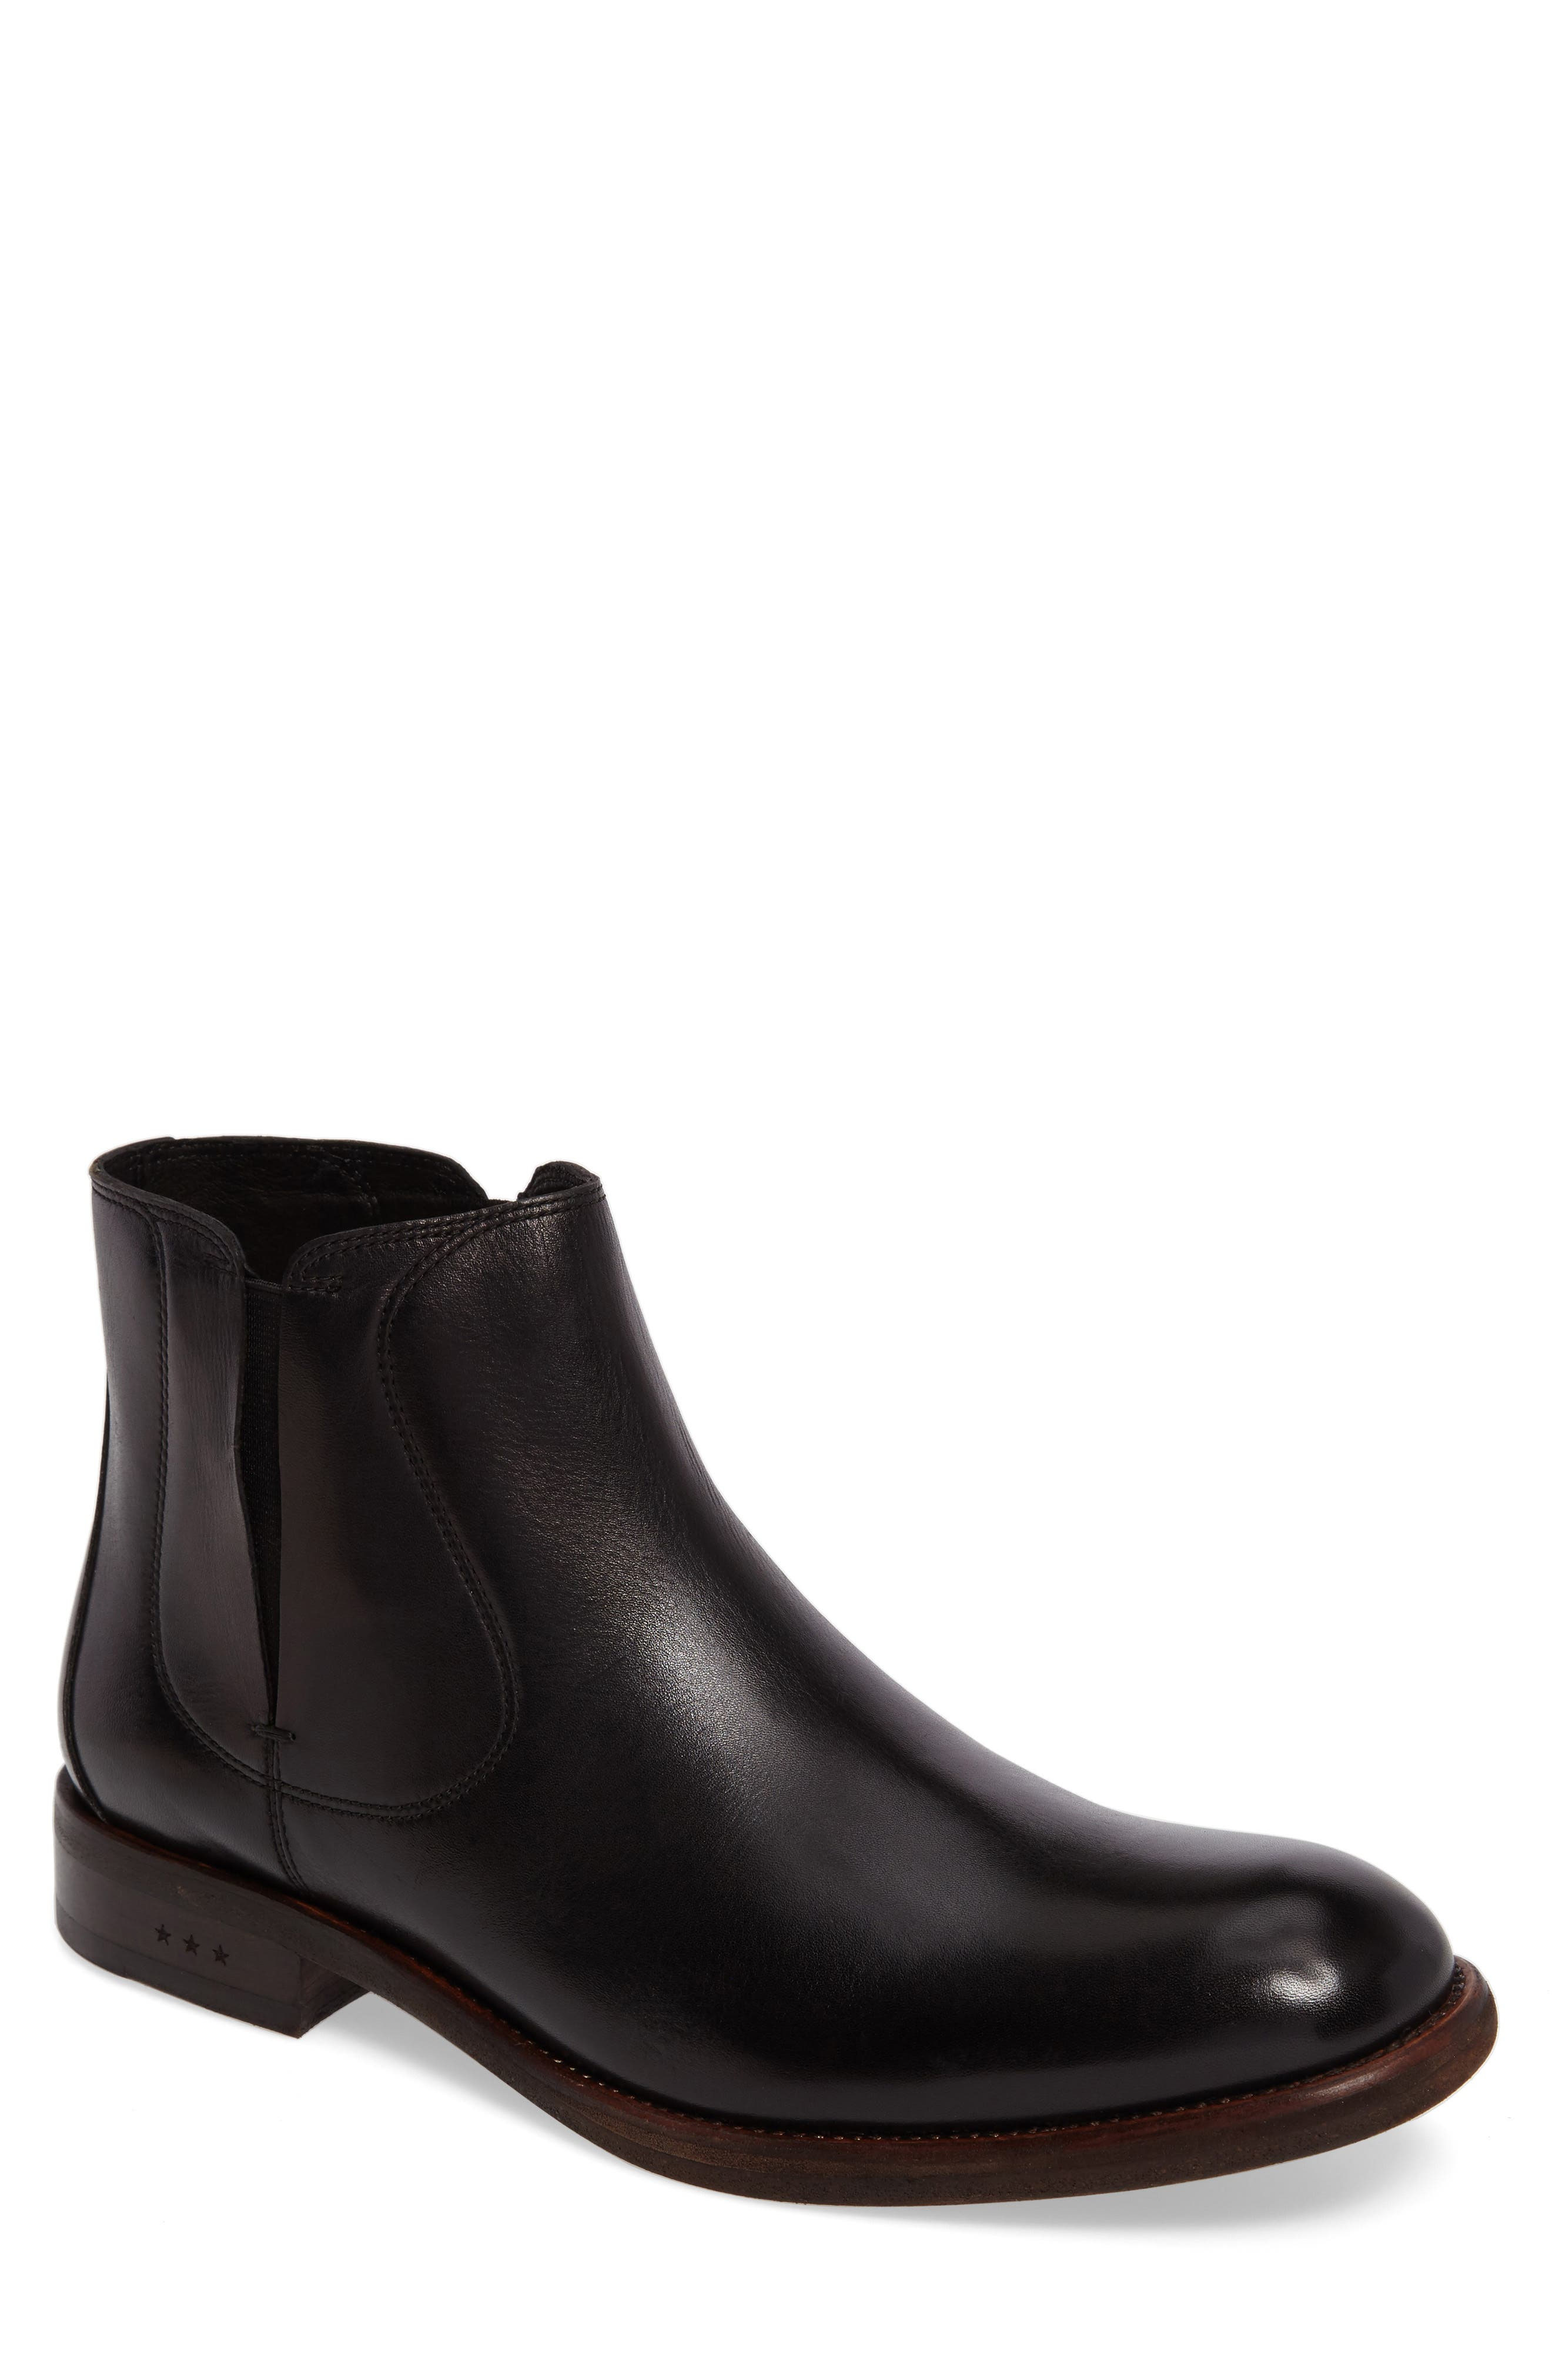 JOHN VARVATOS STAR USA, Waverley Chelsea Boot, Main thumbnail 1, color, BLACK LEATHER